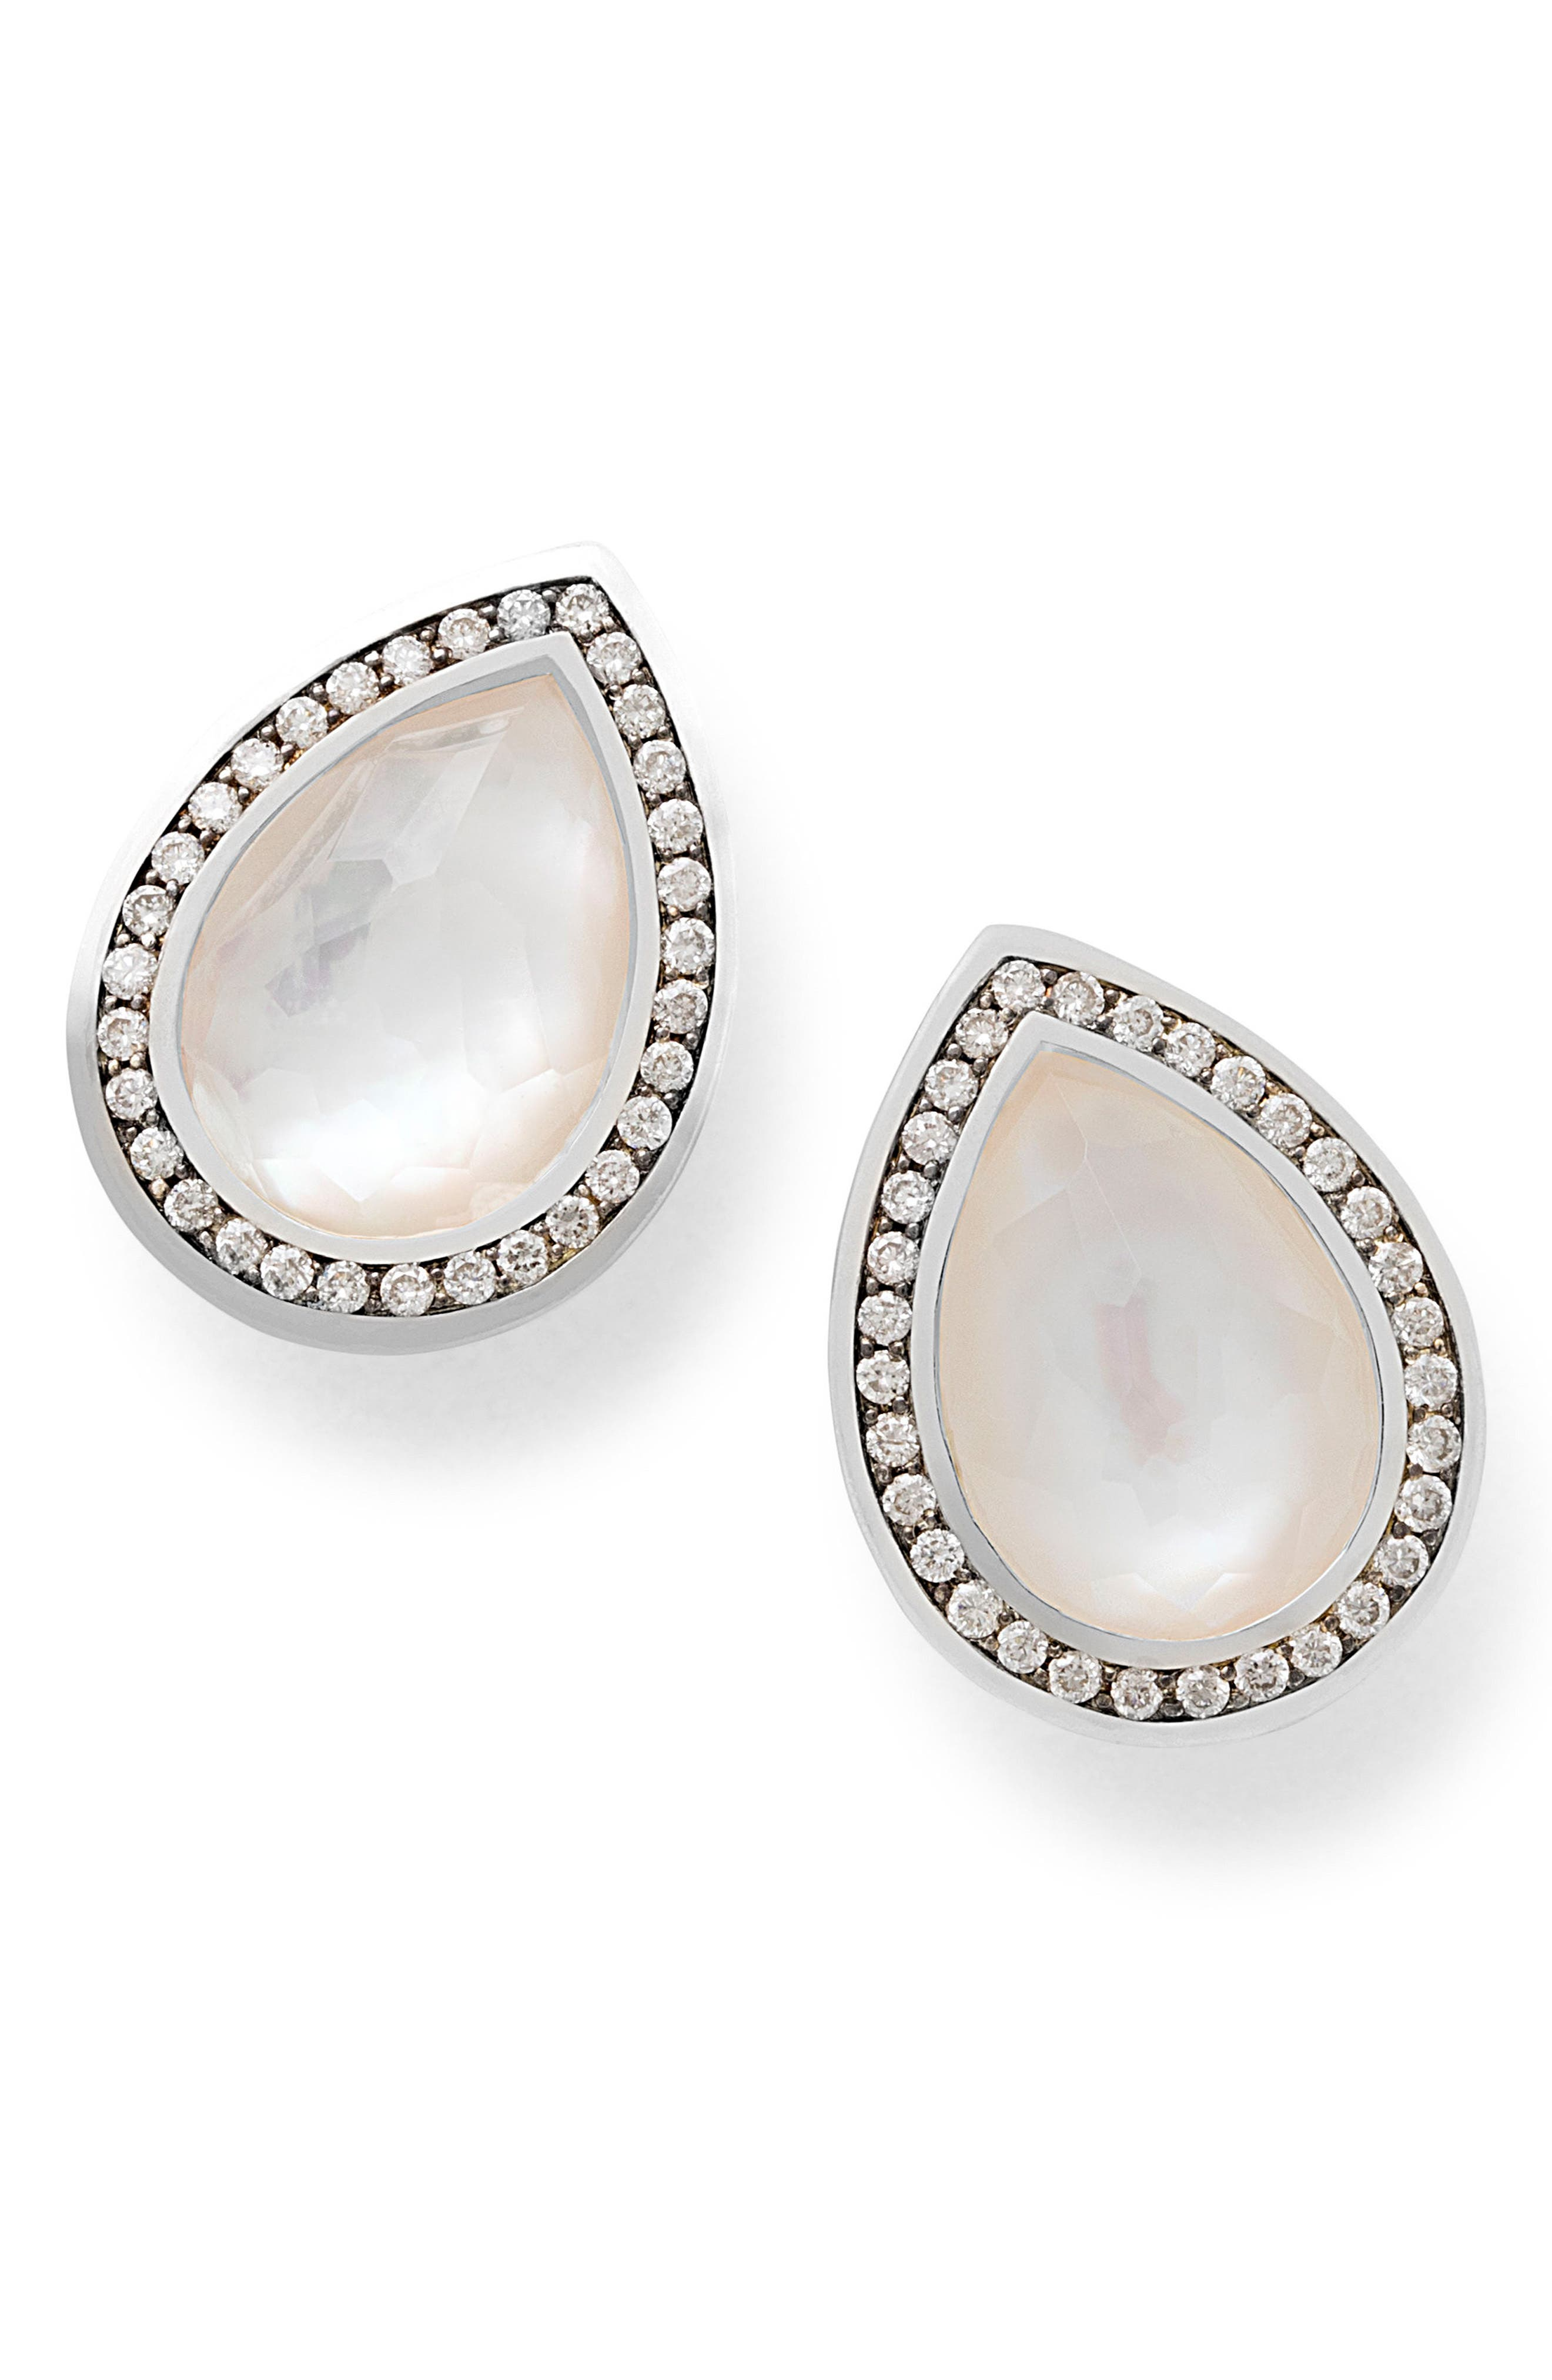 Ippolita Teardrop Stud Earrings